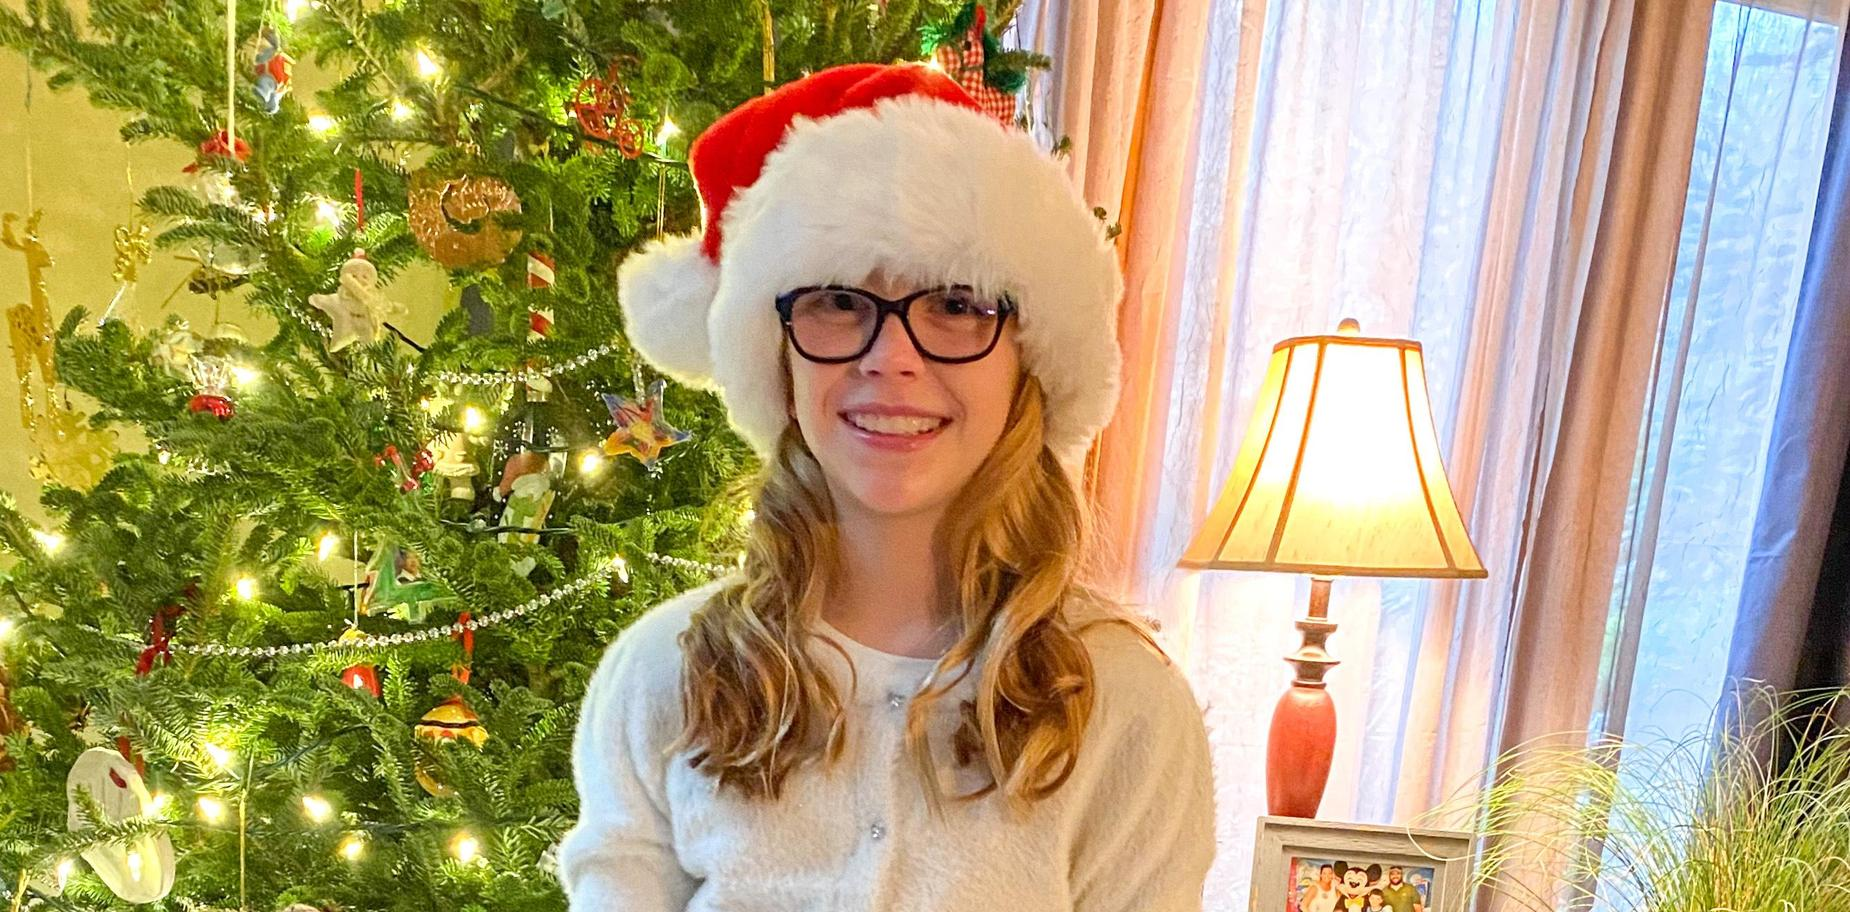 pic of student in holiday attire